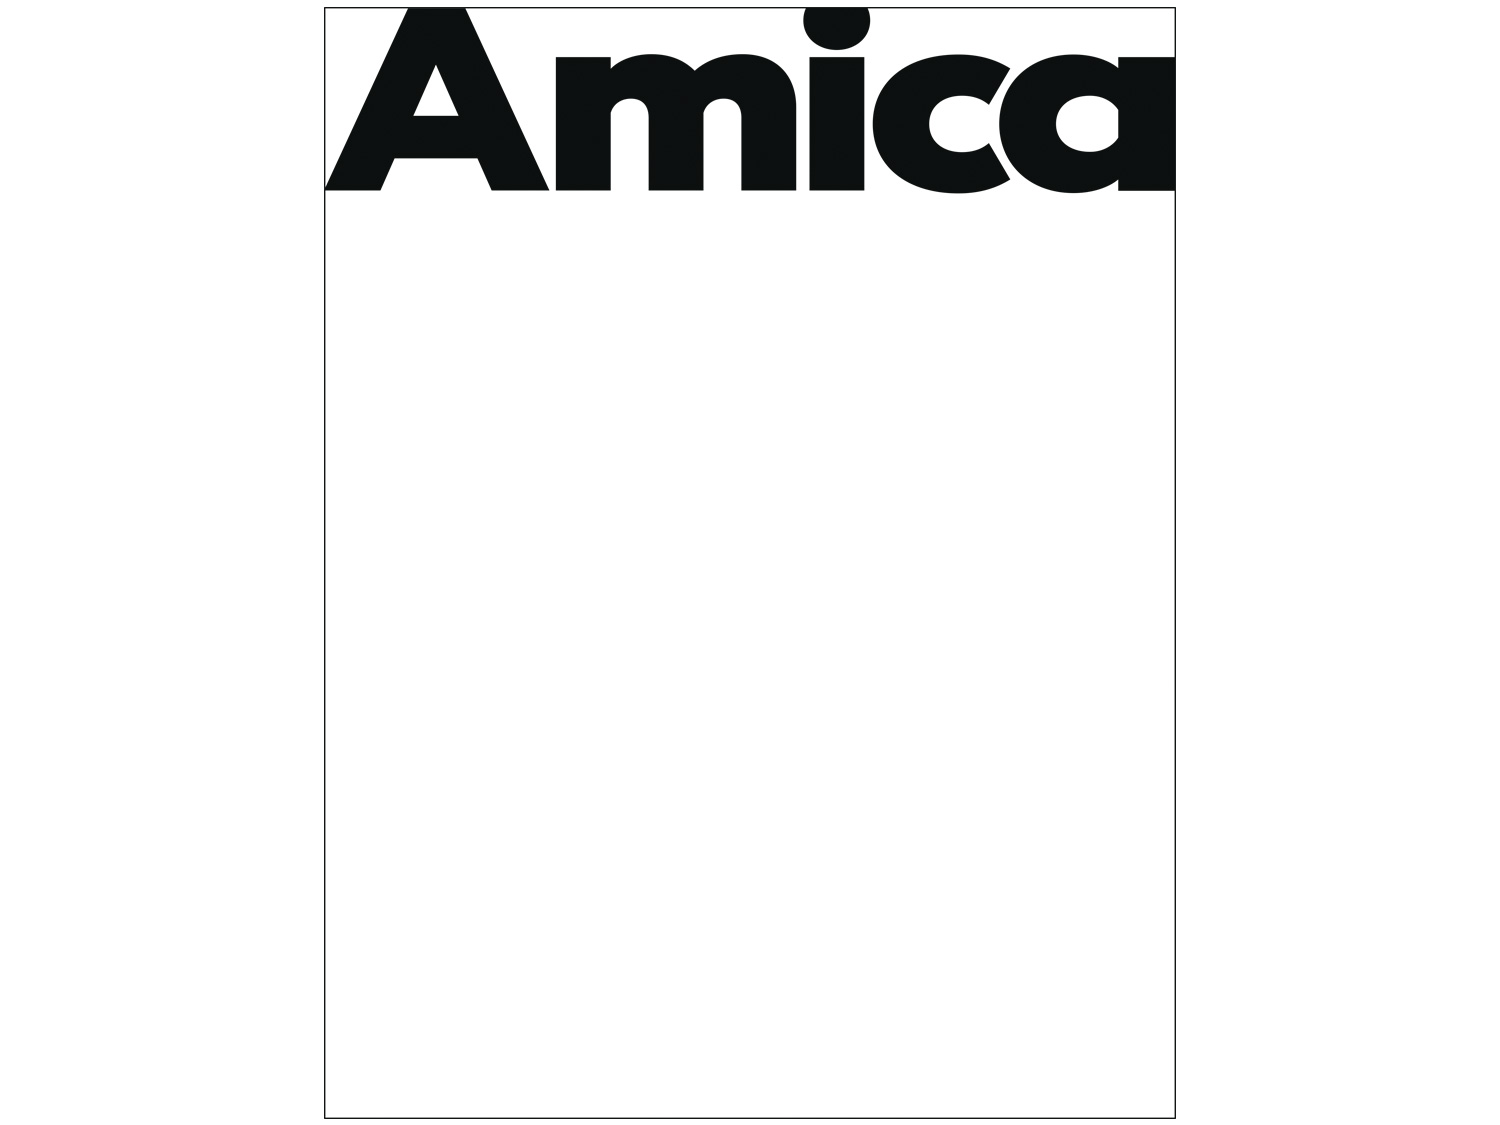 8/31 – Amica magazine redesign at Chandelier Creative